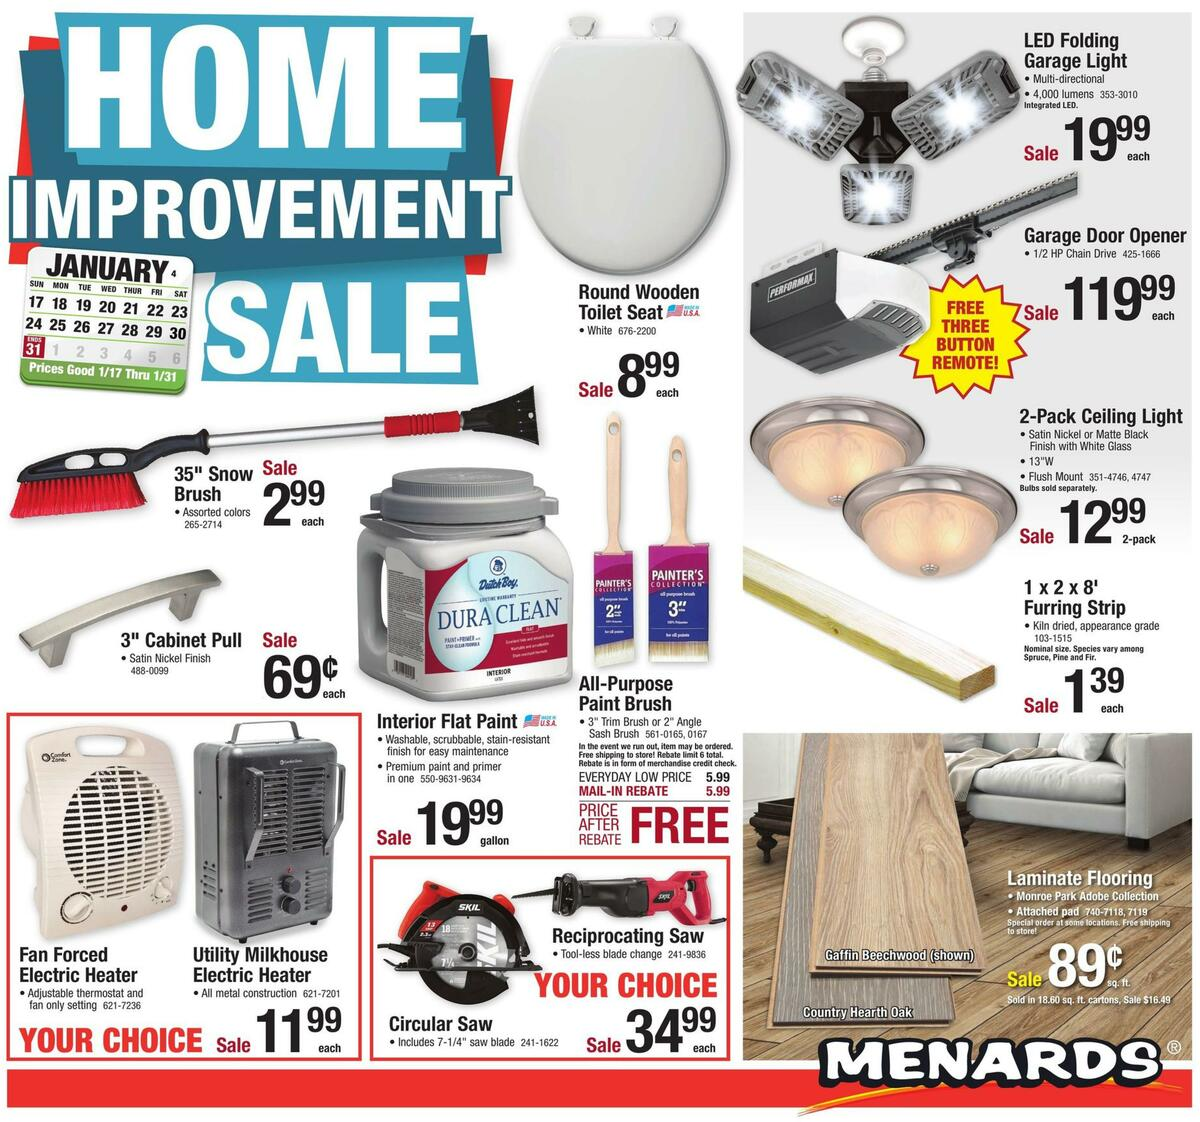 Menards Weekly Ad from January 17